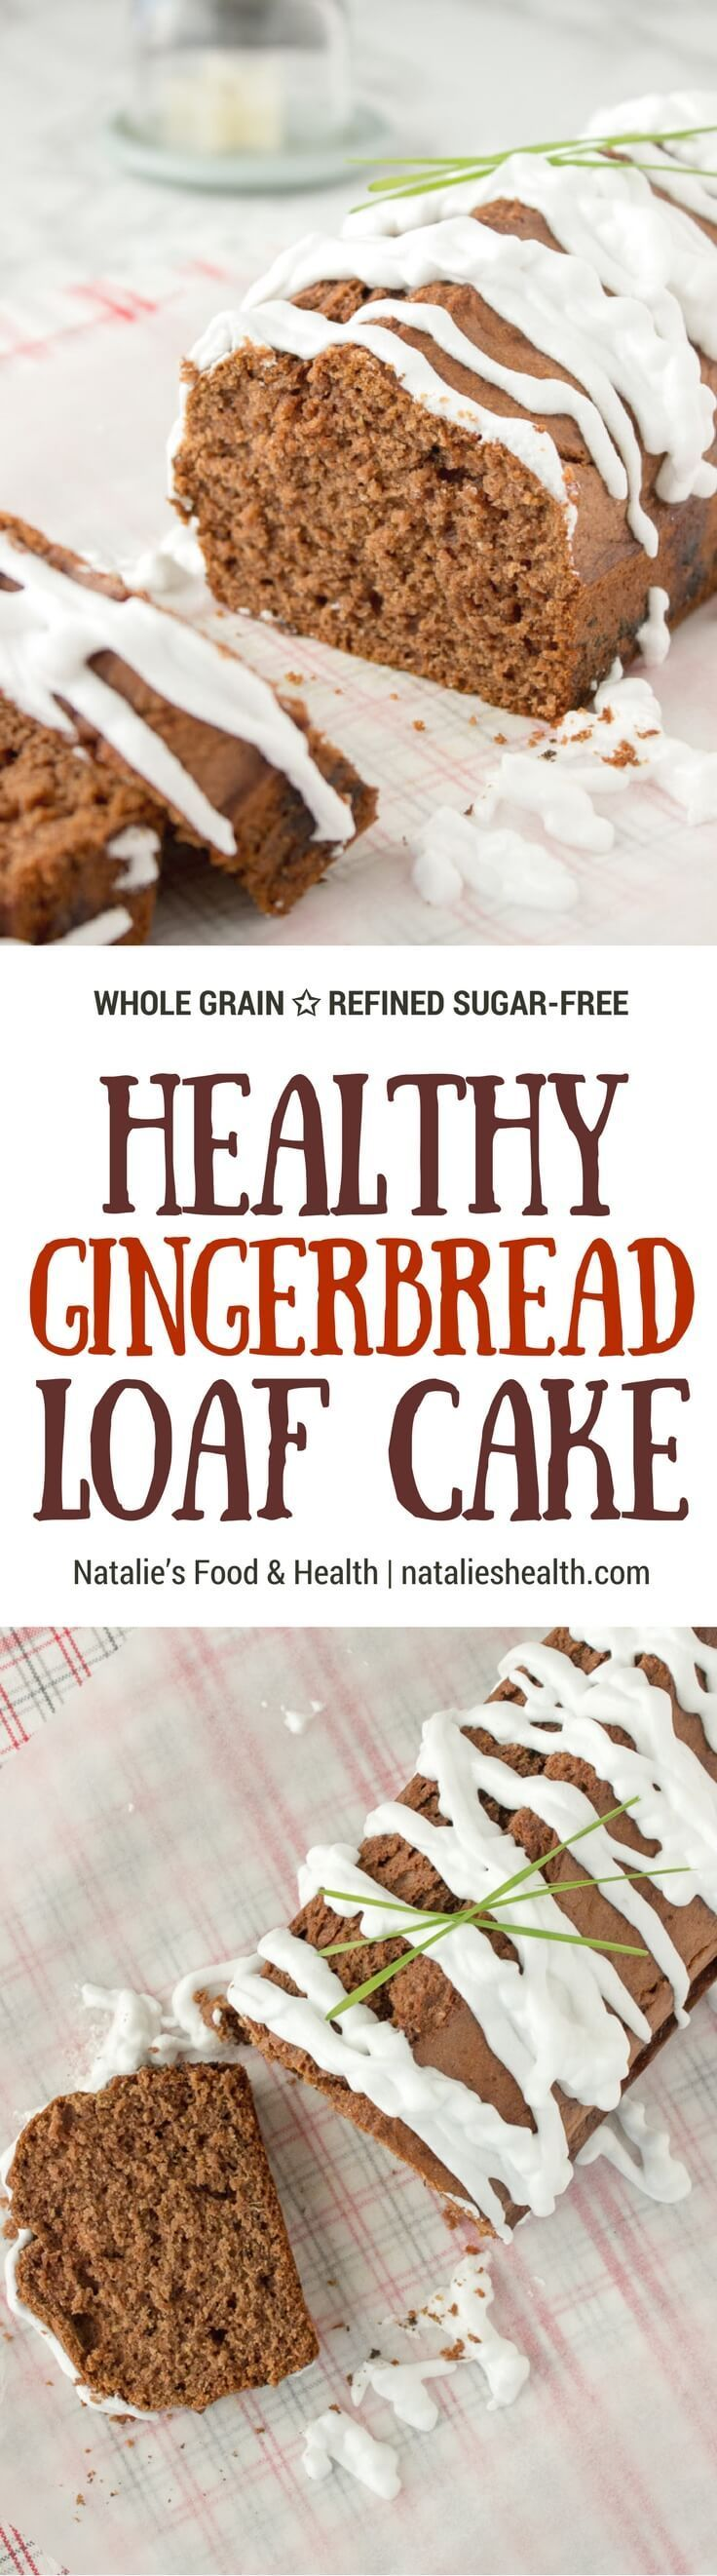 Irresistibly soft and full of warm, fragrant spices, this Gingerbread Loaf Cake is refined sugar-free and made with all HEALTHY ingredients. #healthy #ginger #christmas #holidays #kidsfriendly #skinny #easy #bread #dessert #wholegrain #cinnamon #lowcalorie | www.natalieshealth.com